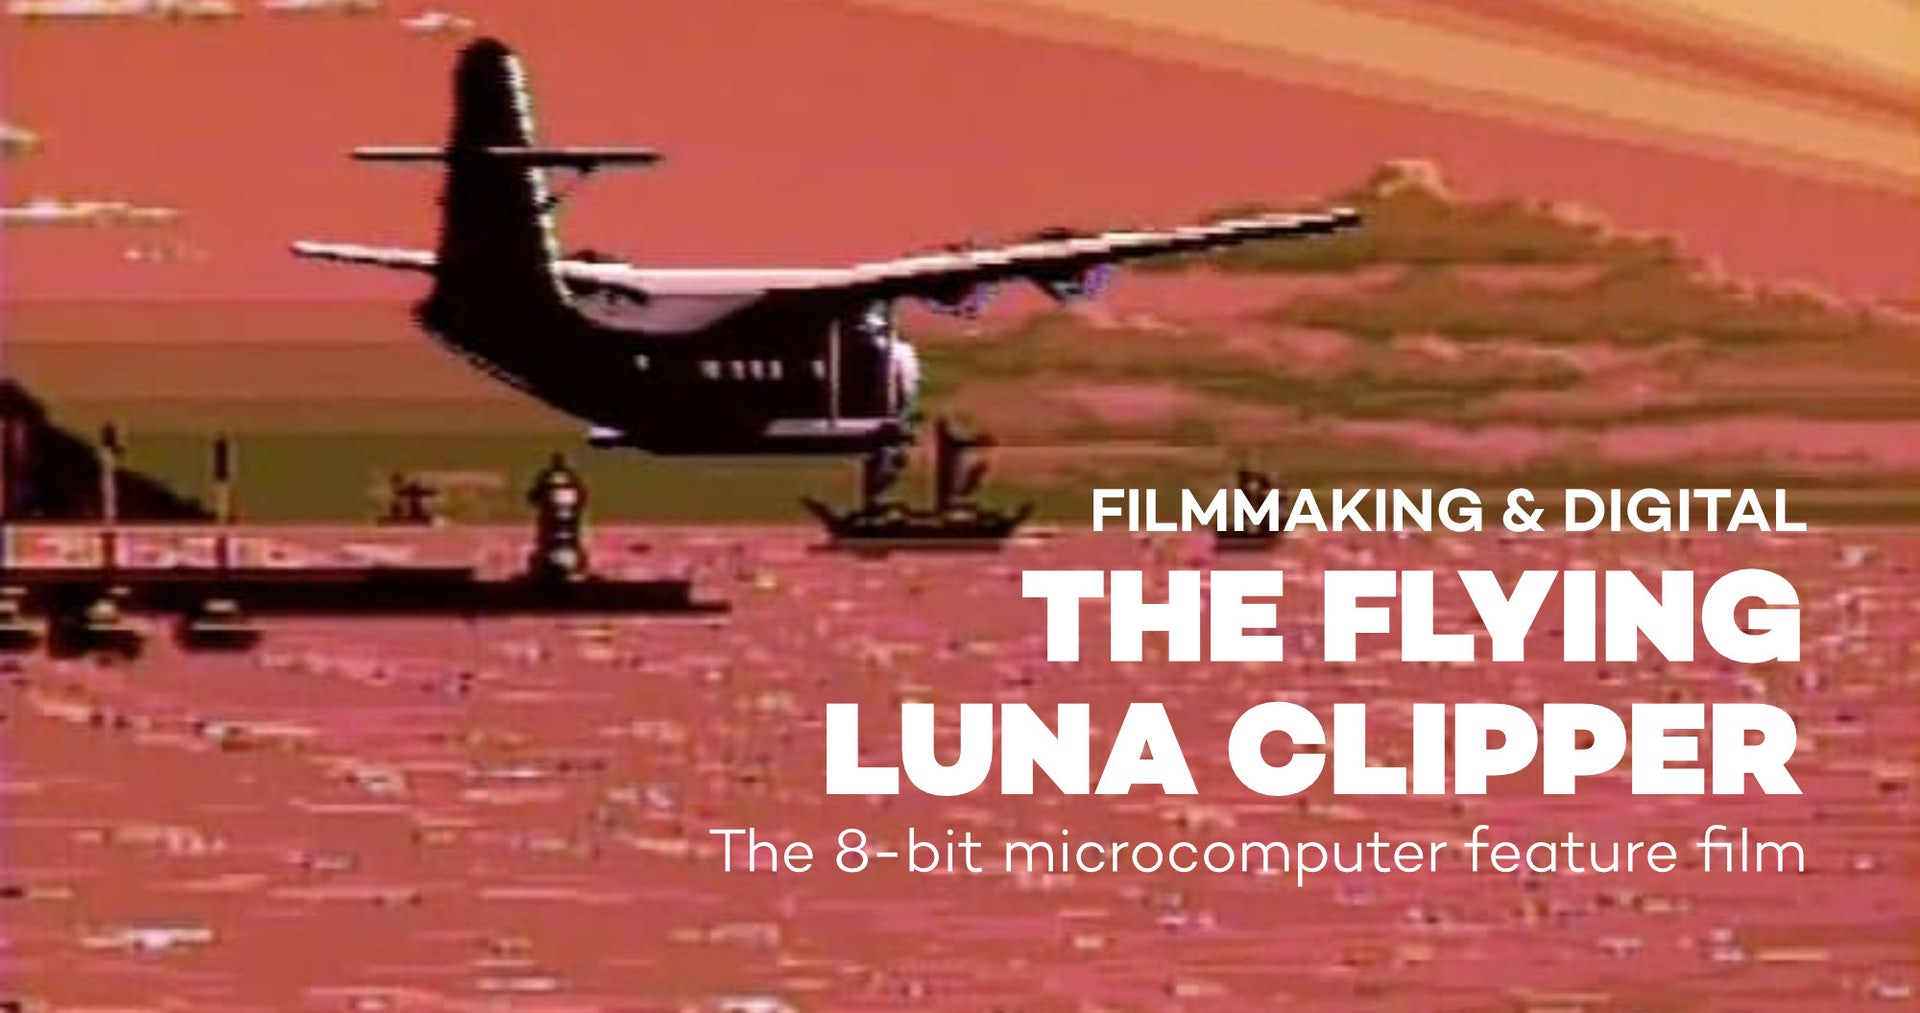 The Flying Luna Clipper